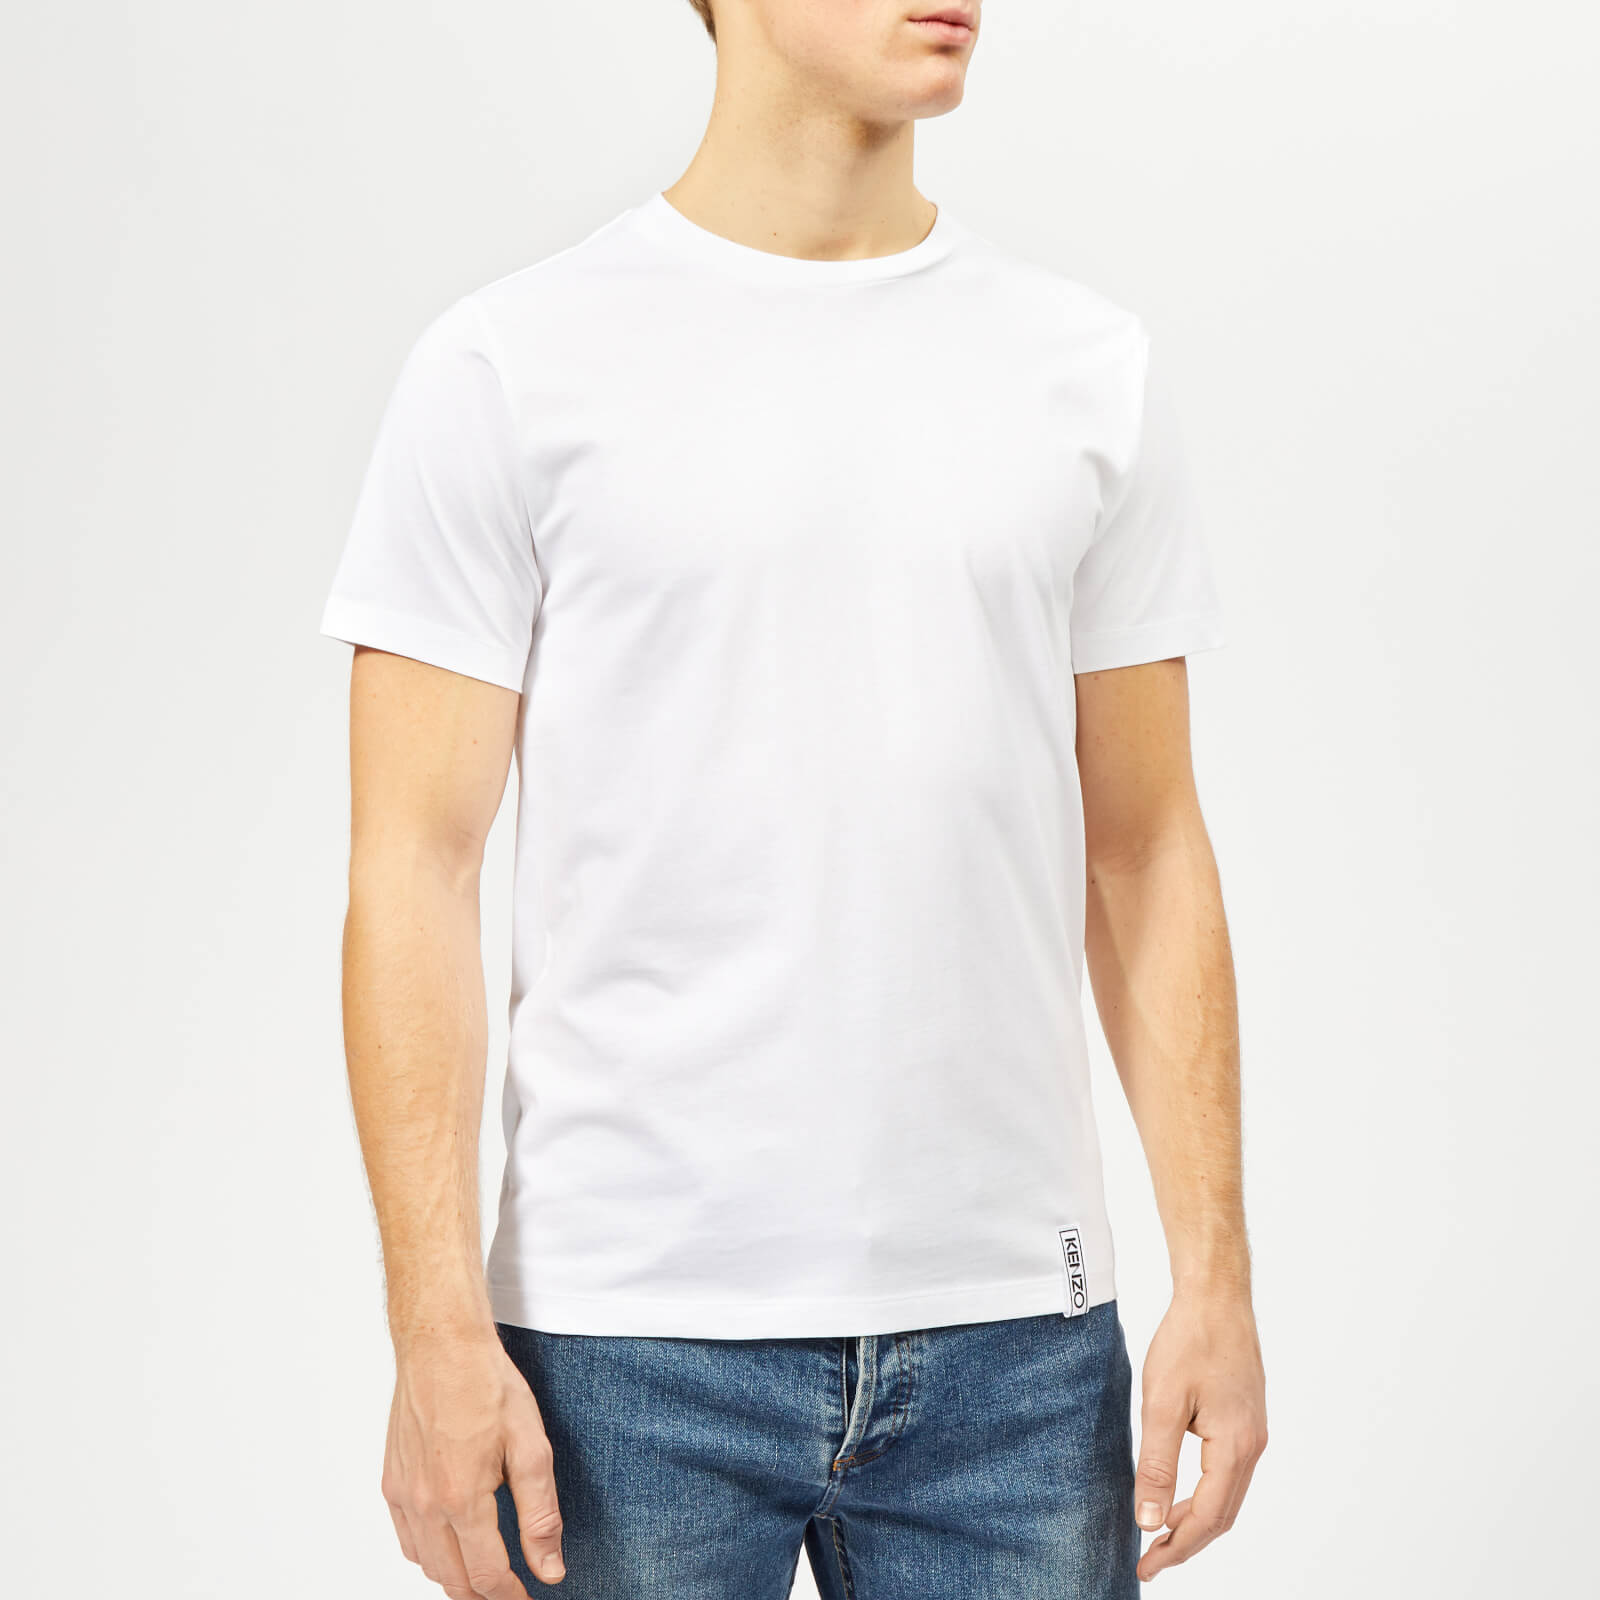 93c45a14 KENZO Men's Basic T-Shirt - White - Free UK Delivery over £50